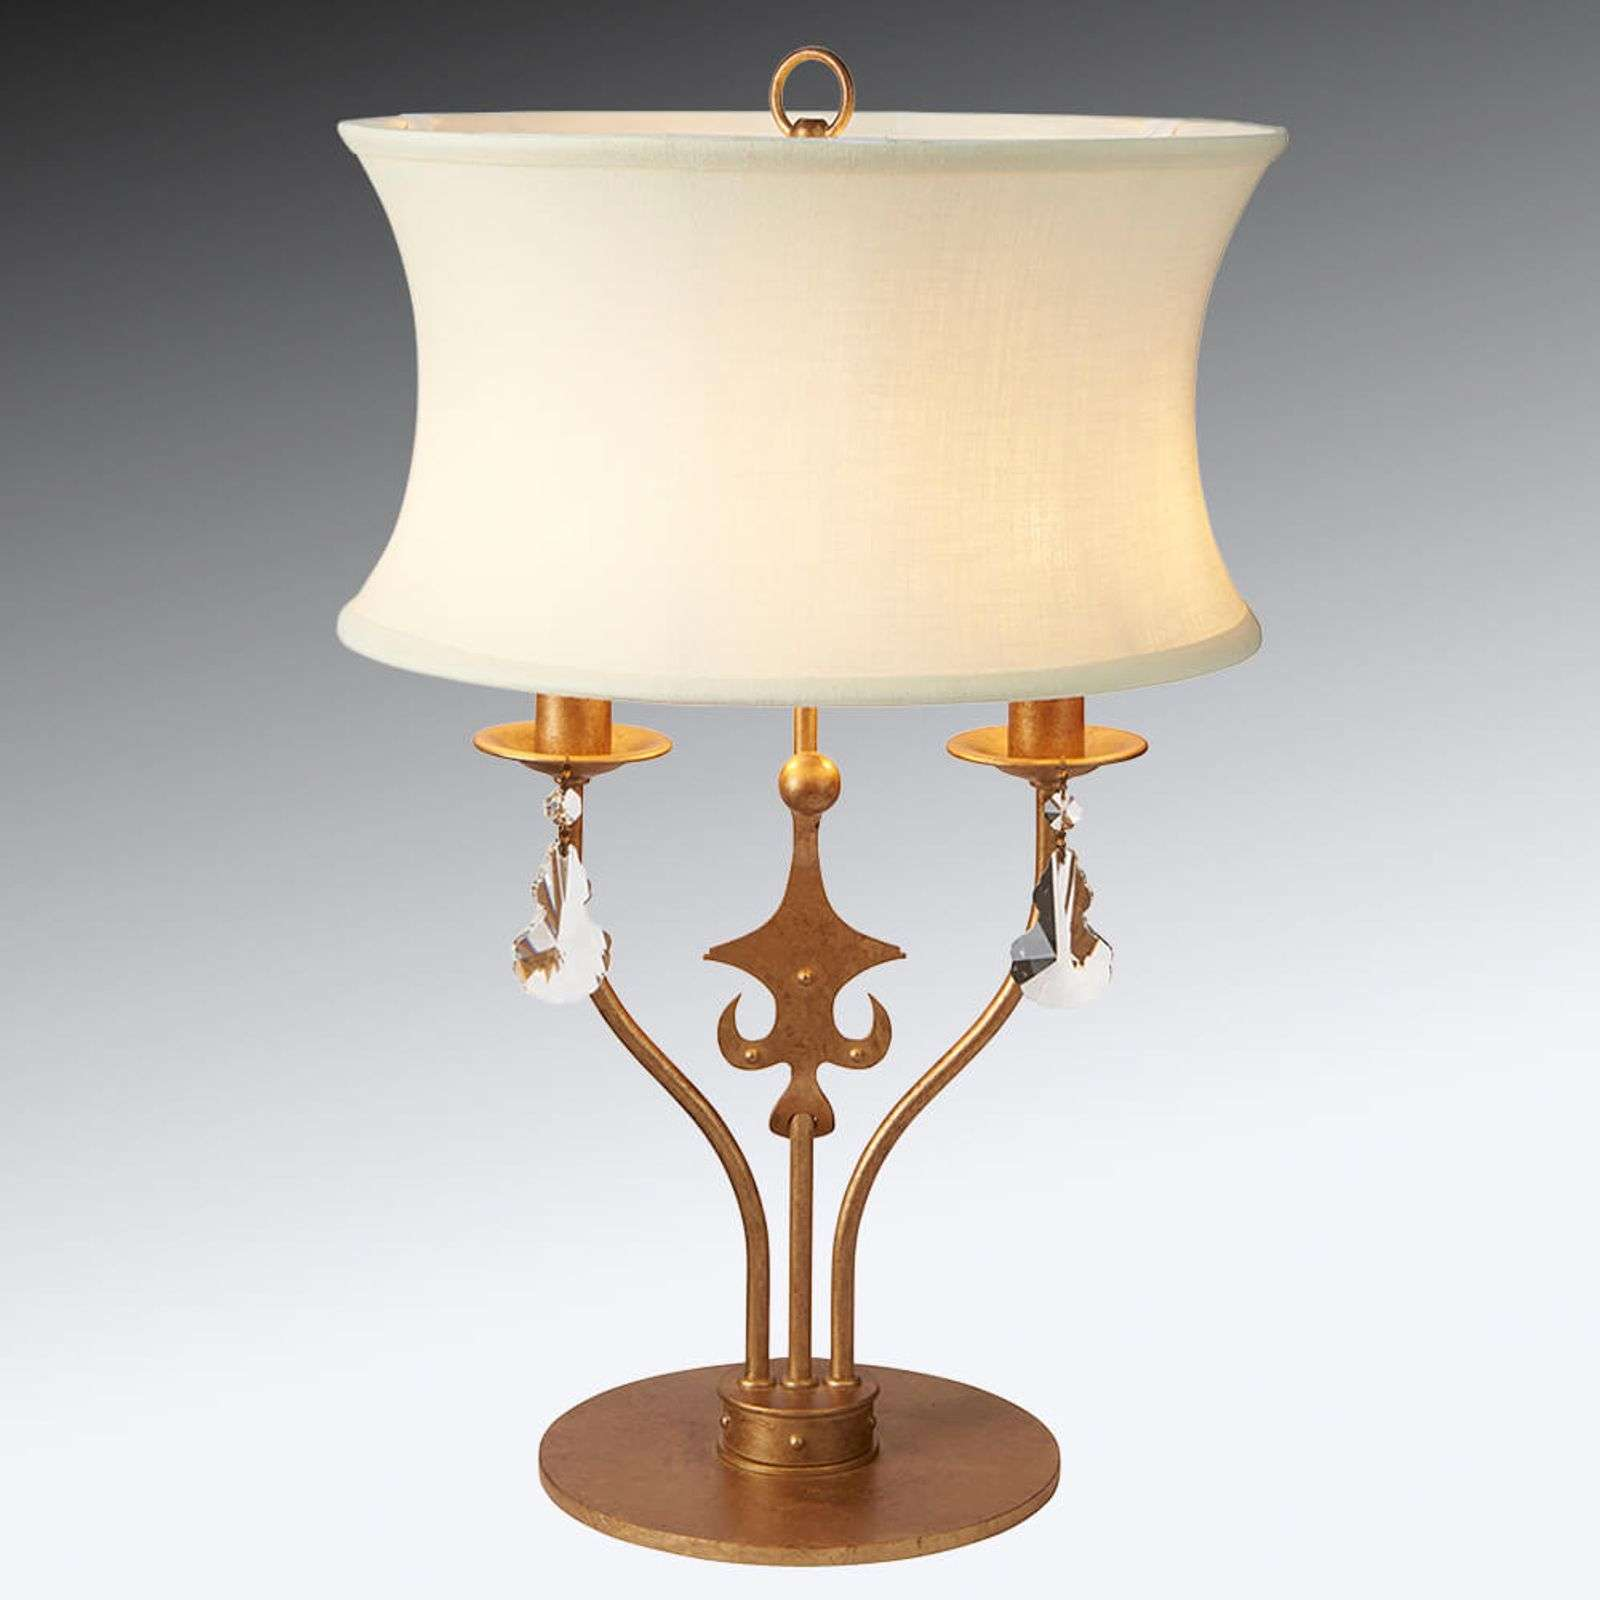 Lampe à poser textile Windsor décorative